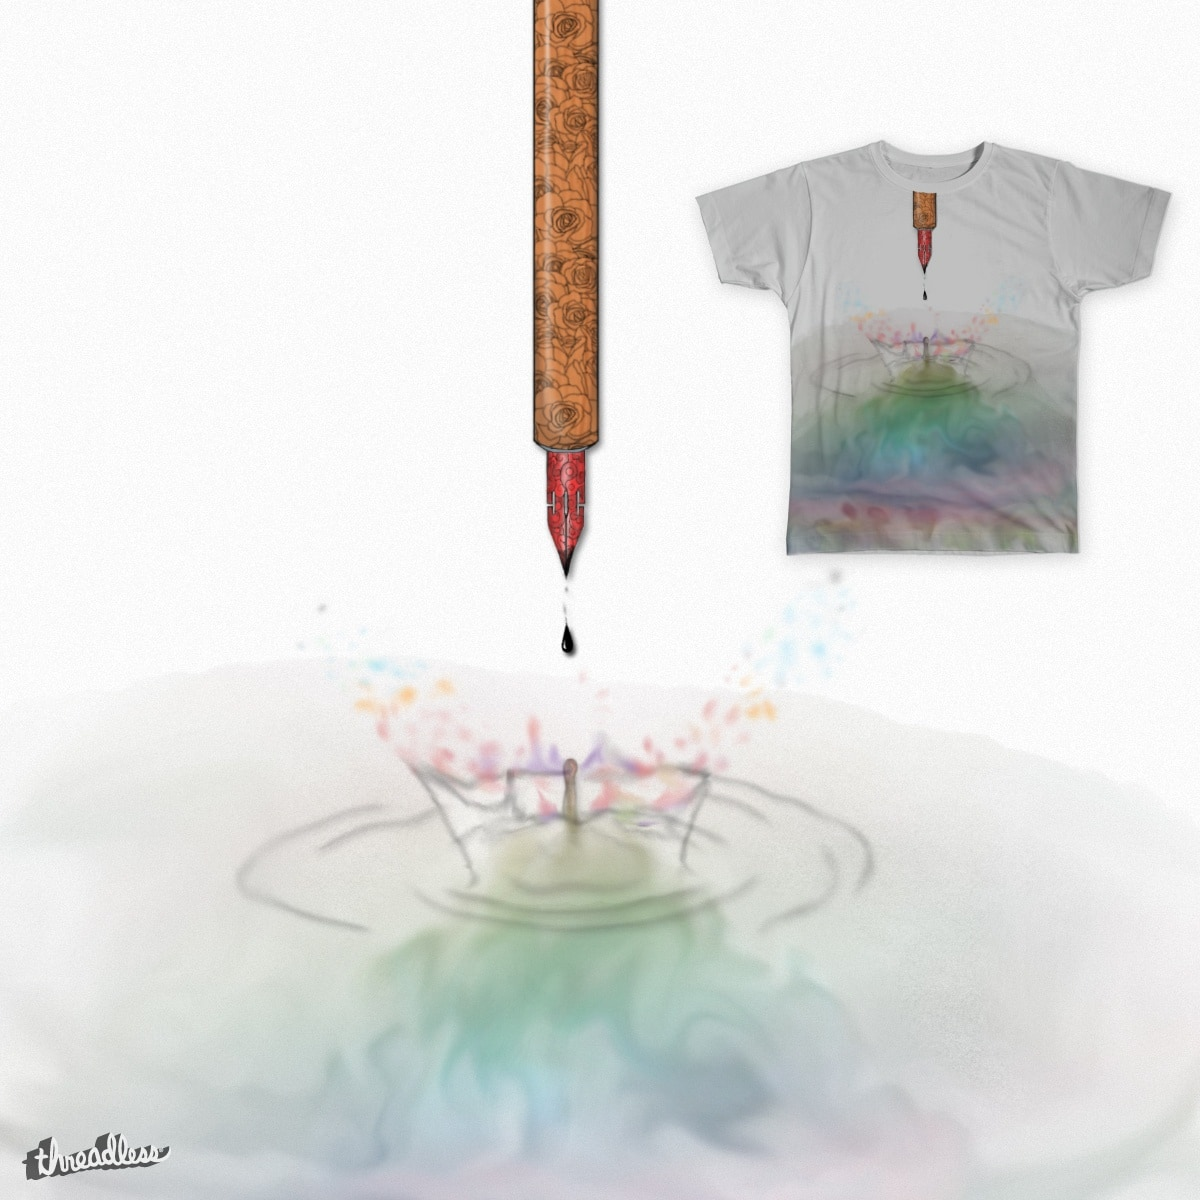 Of All the Colors by kingofhearts on Threadless